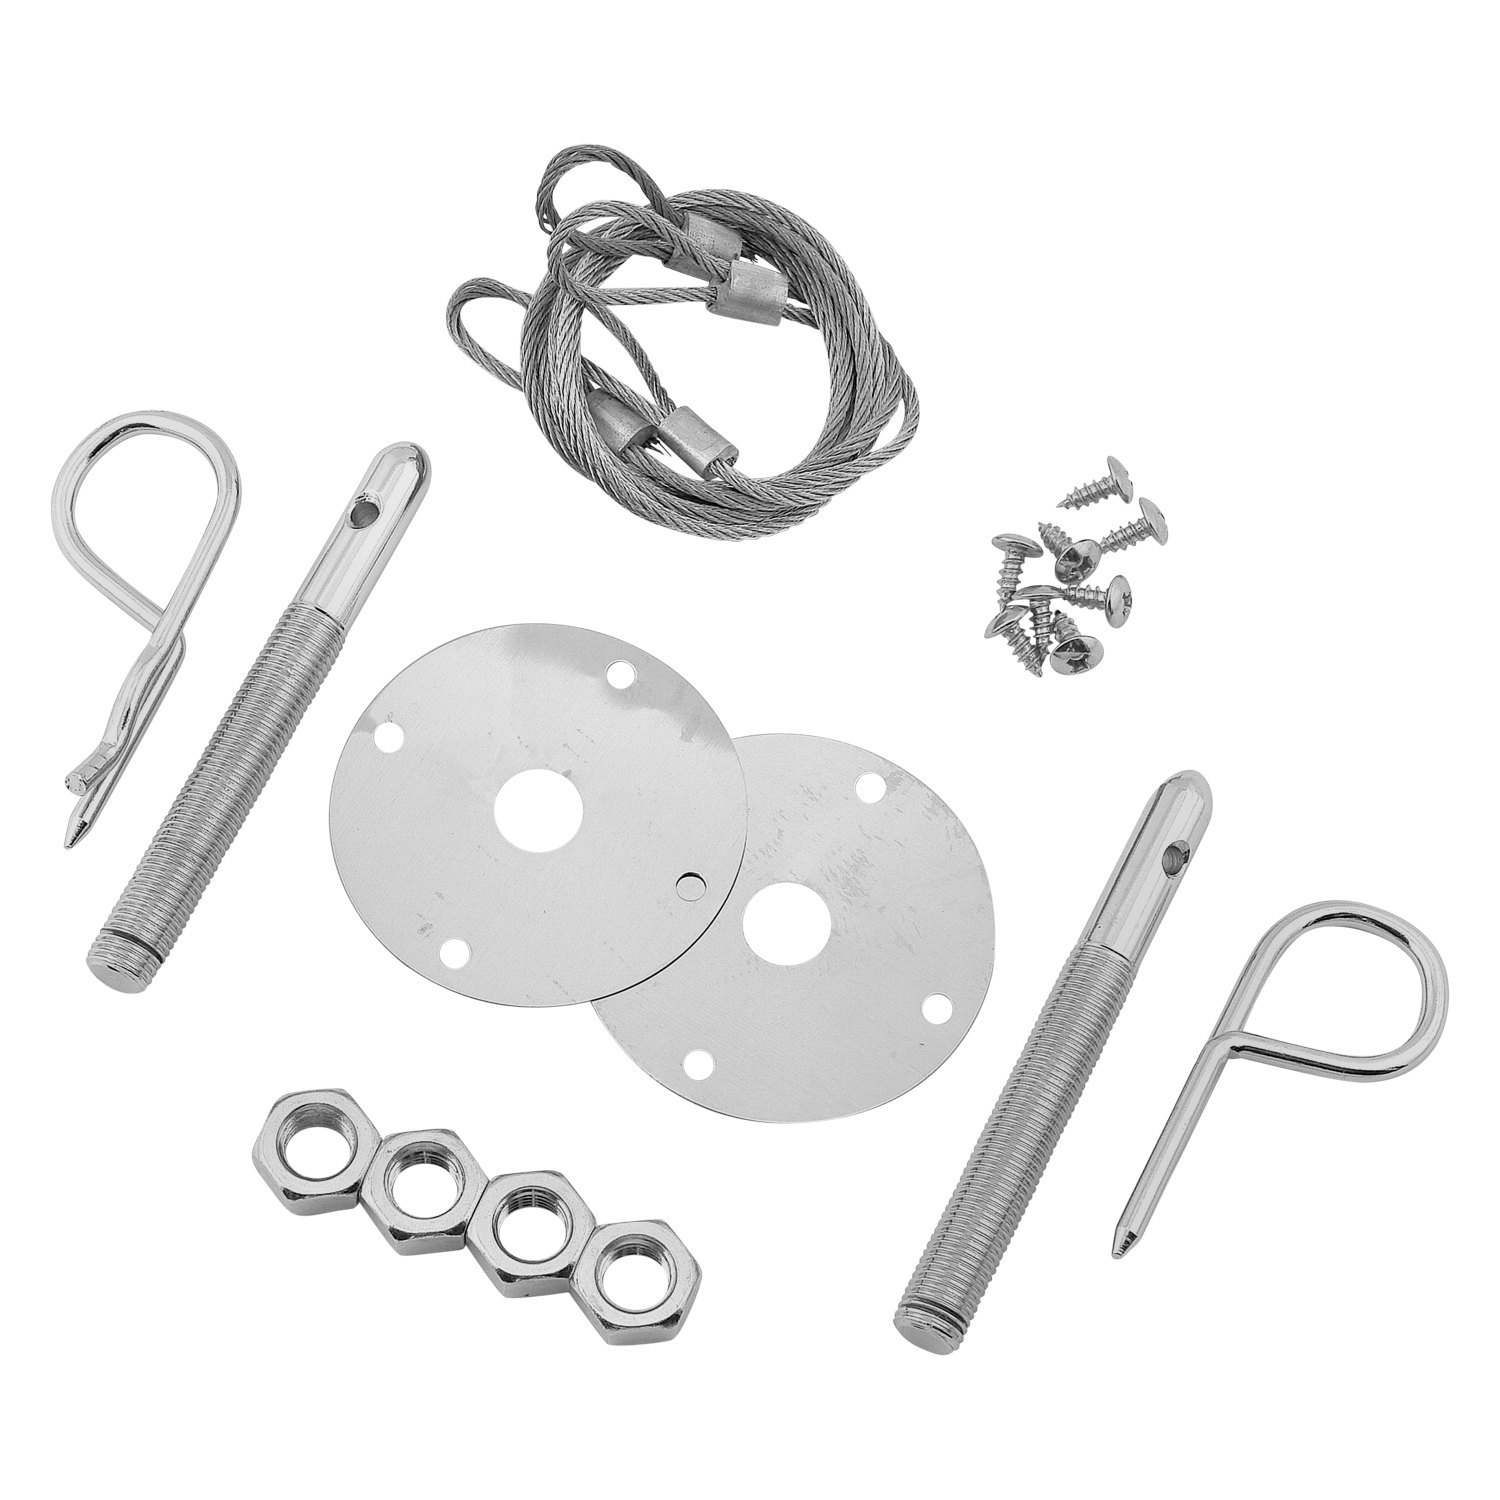 Mr  Gasket® 1616 - Competition Hood Pin Kit with Lanyards